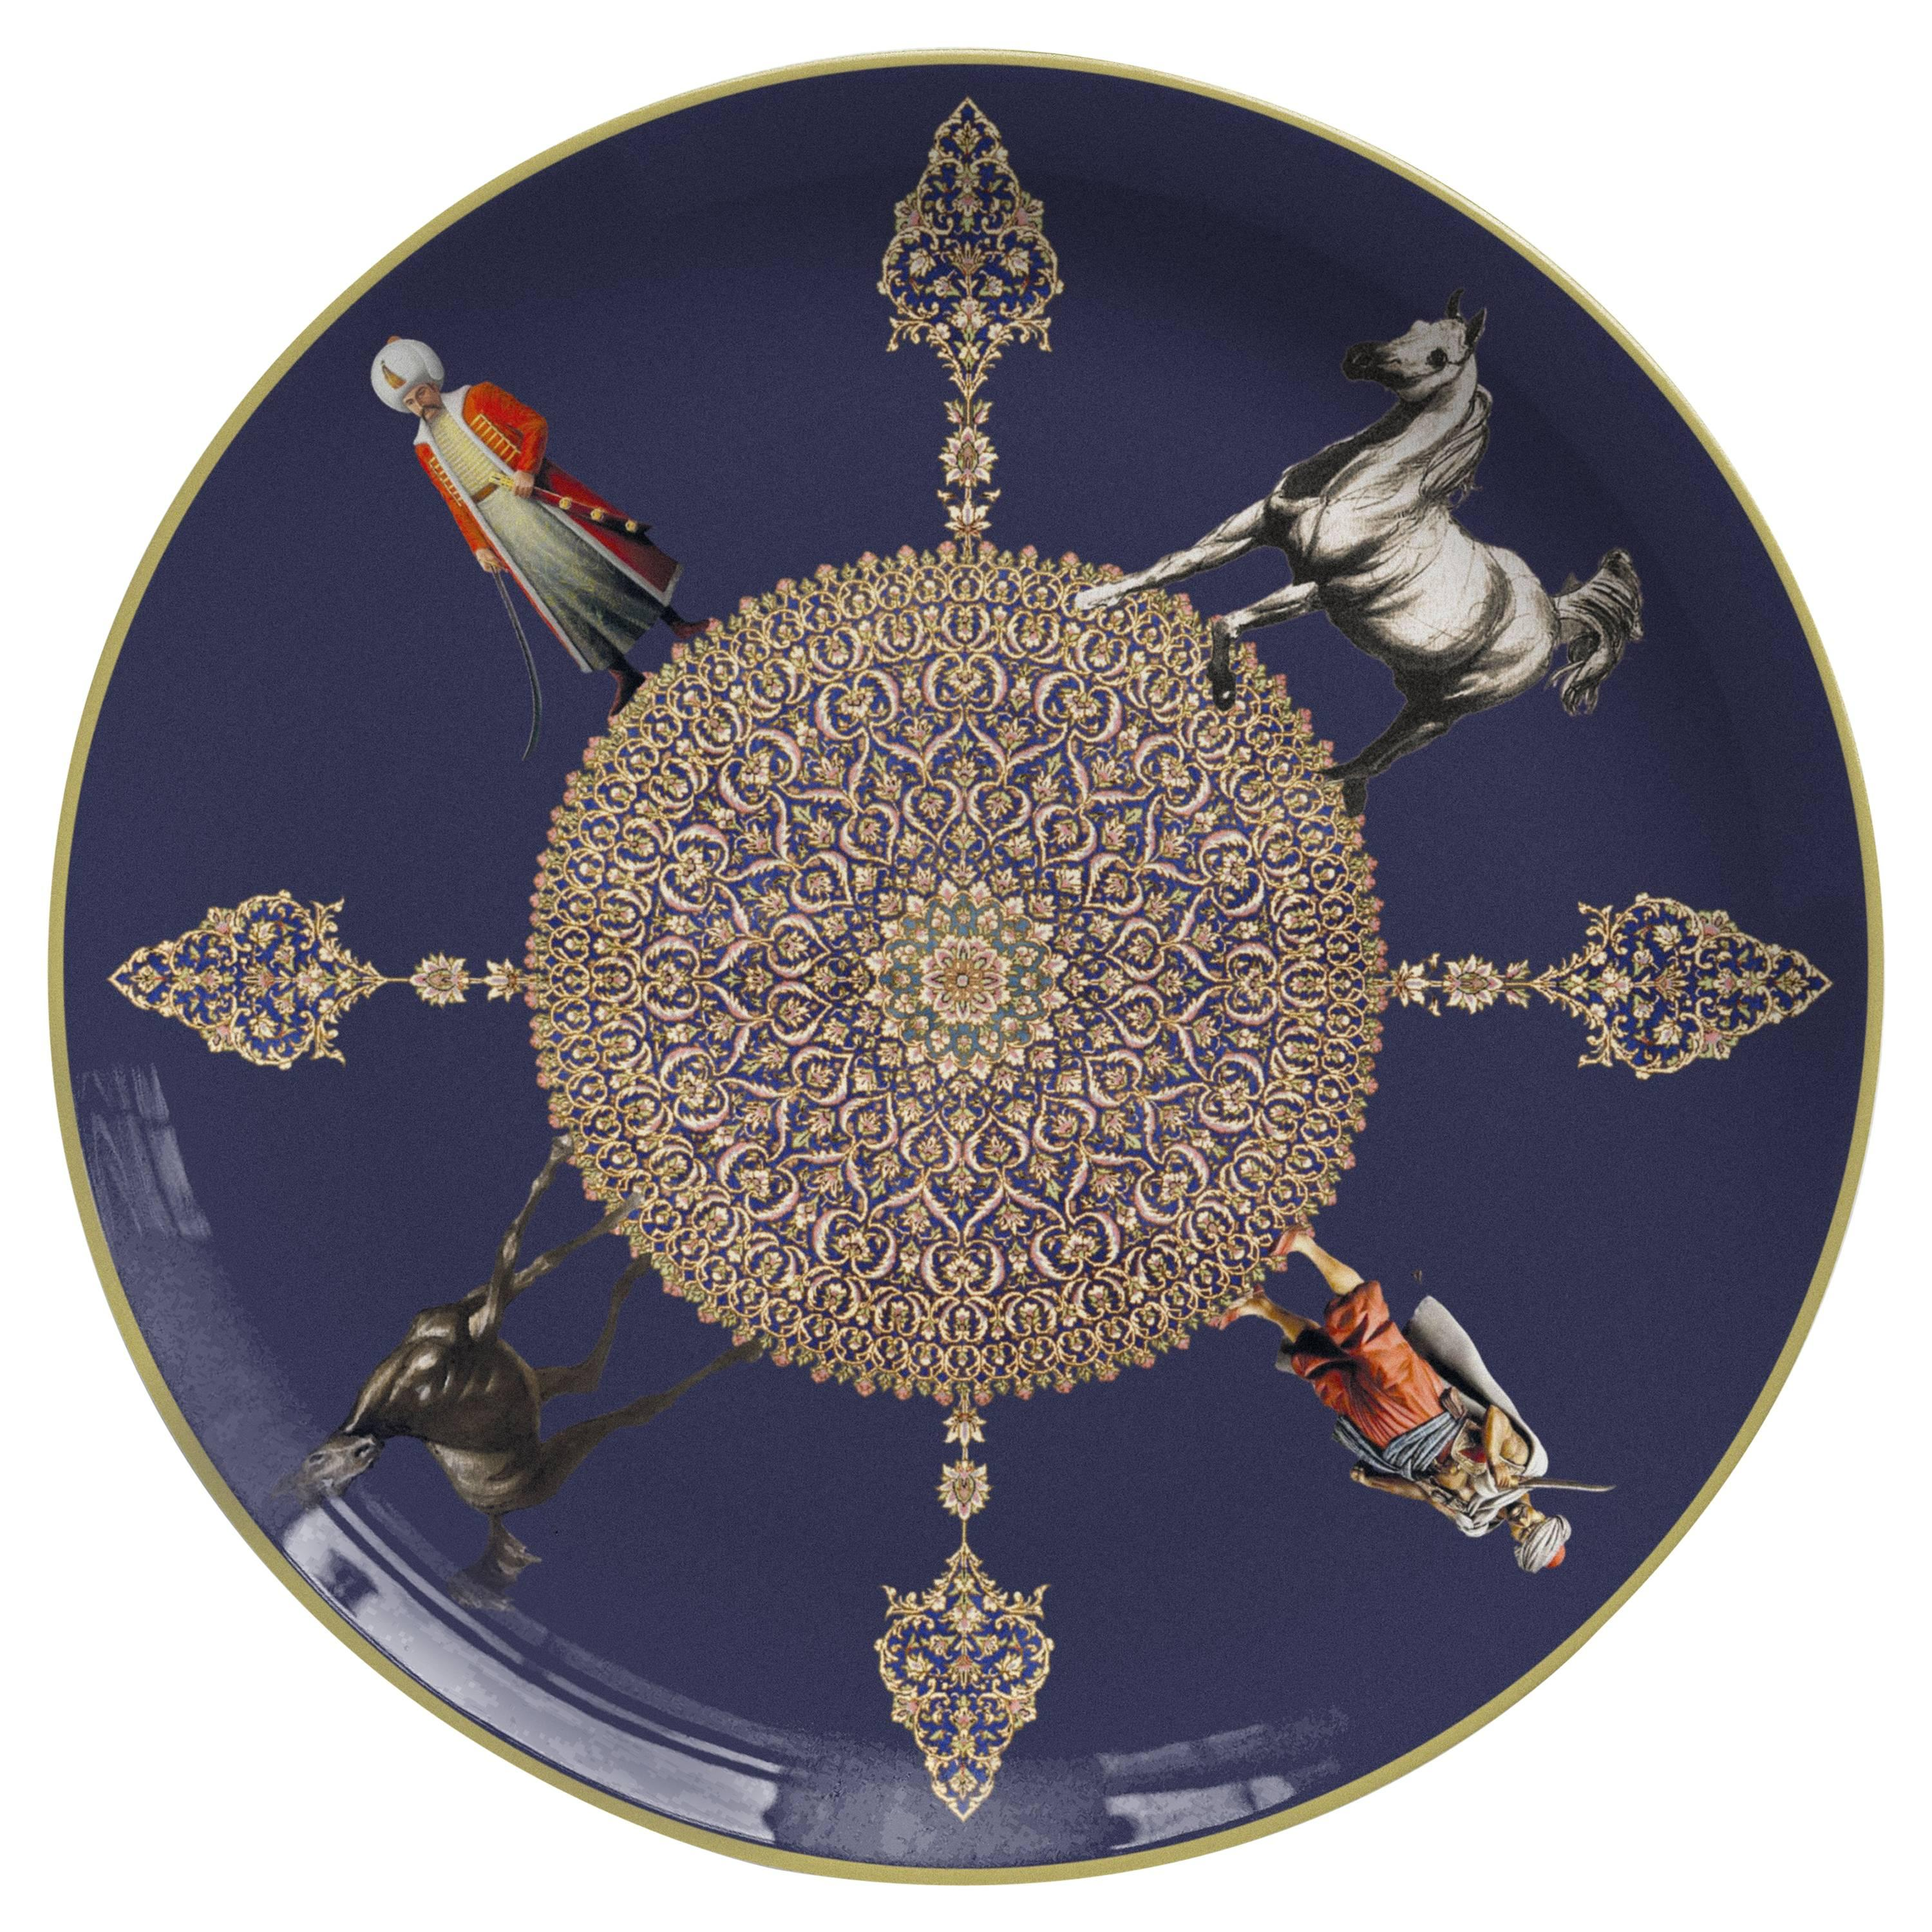 Duellanti Porcelain Dinner Plate by Vito Nesta for Les Ottomans, Made in Italy